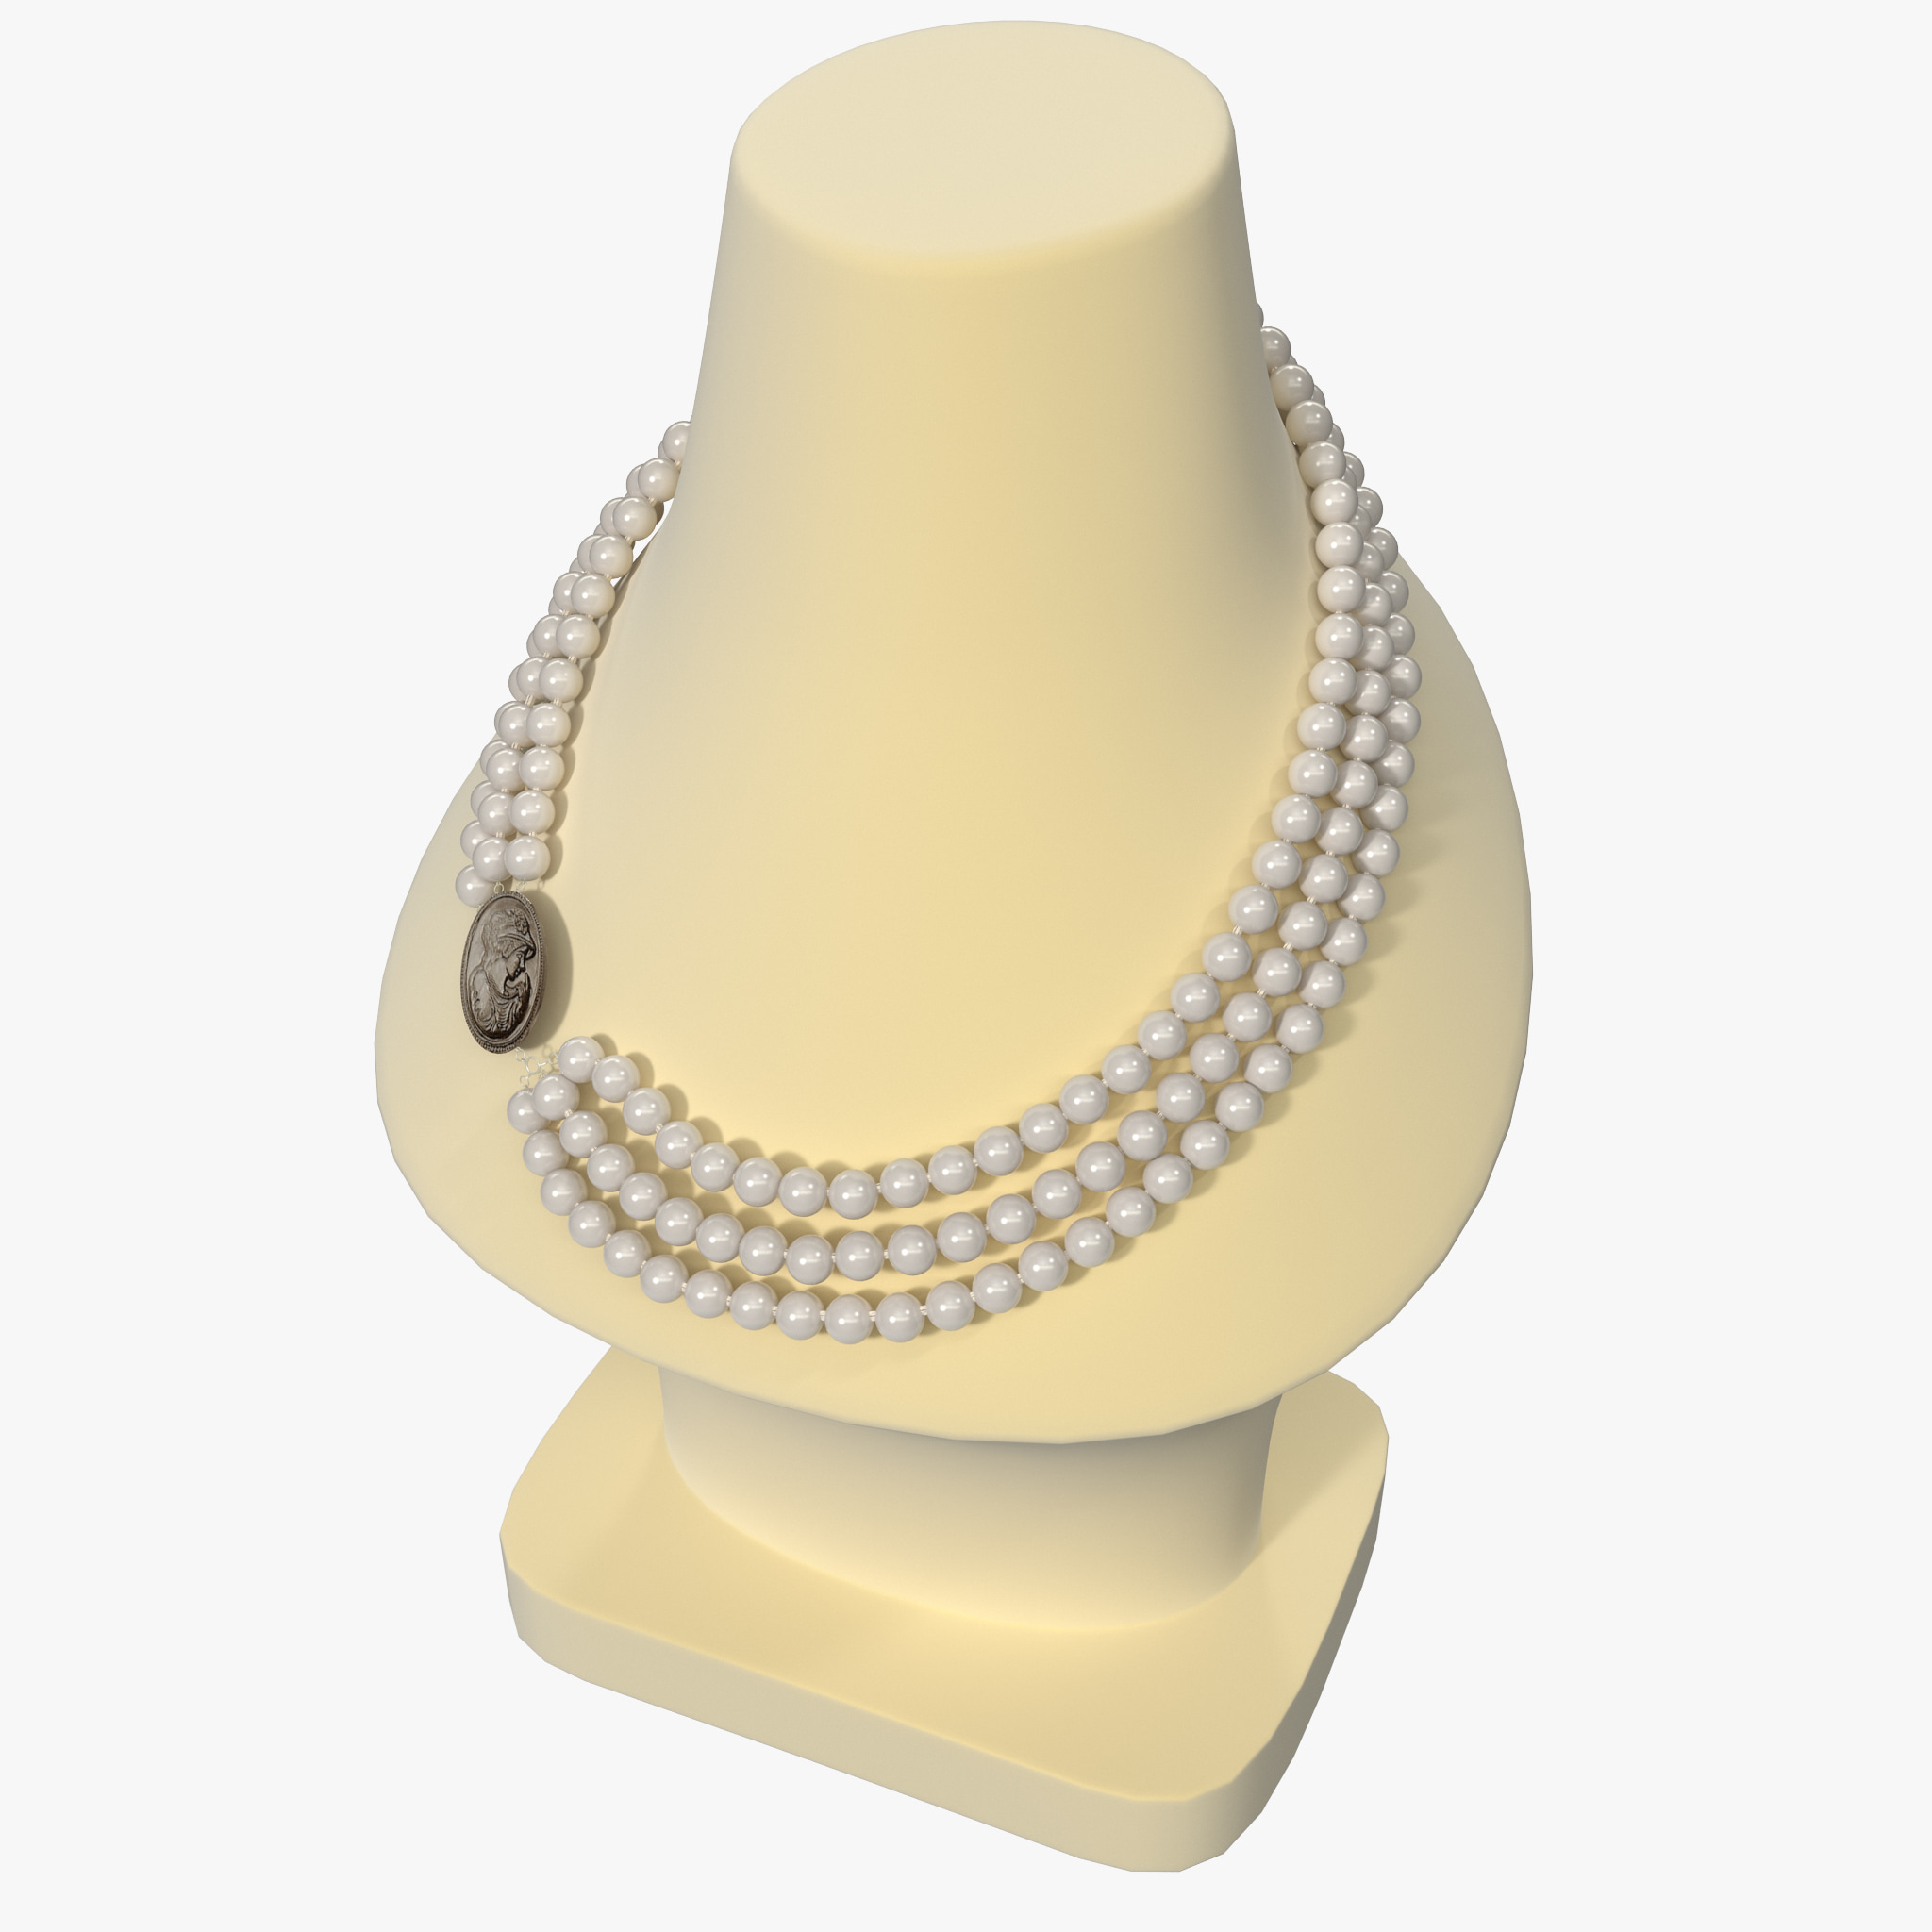 3d jewellery display bust necklace for Jewelry stand 3d model